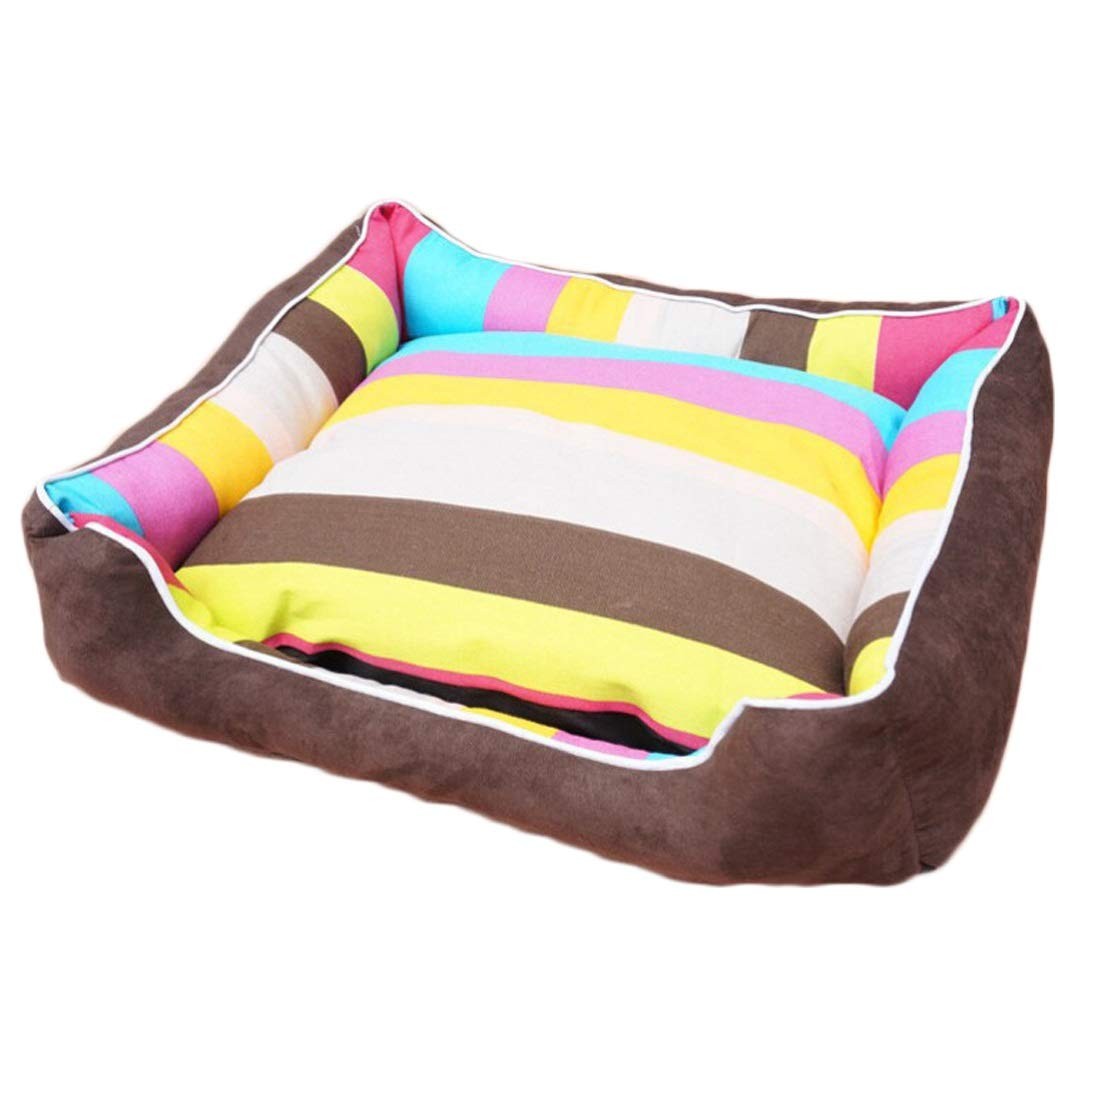 Big color 405015 Big color 405015 RABILTY Kennel Removable Washable Four Seasons Available Teddy golden Retriever Pet Supplies Cat Litter Dog Bed (color   Big color, Size   40  50  15)